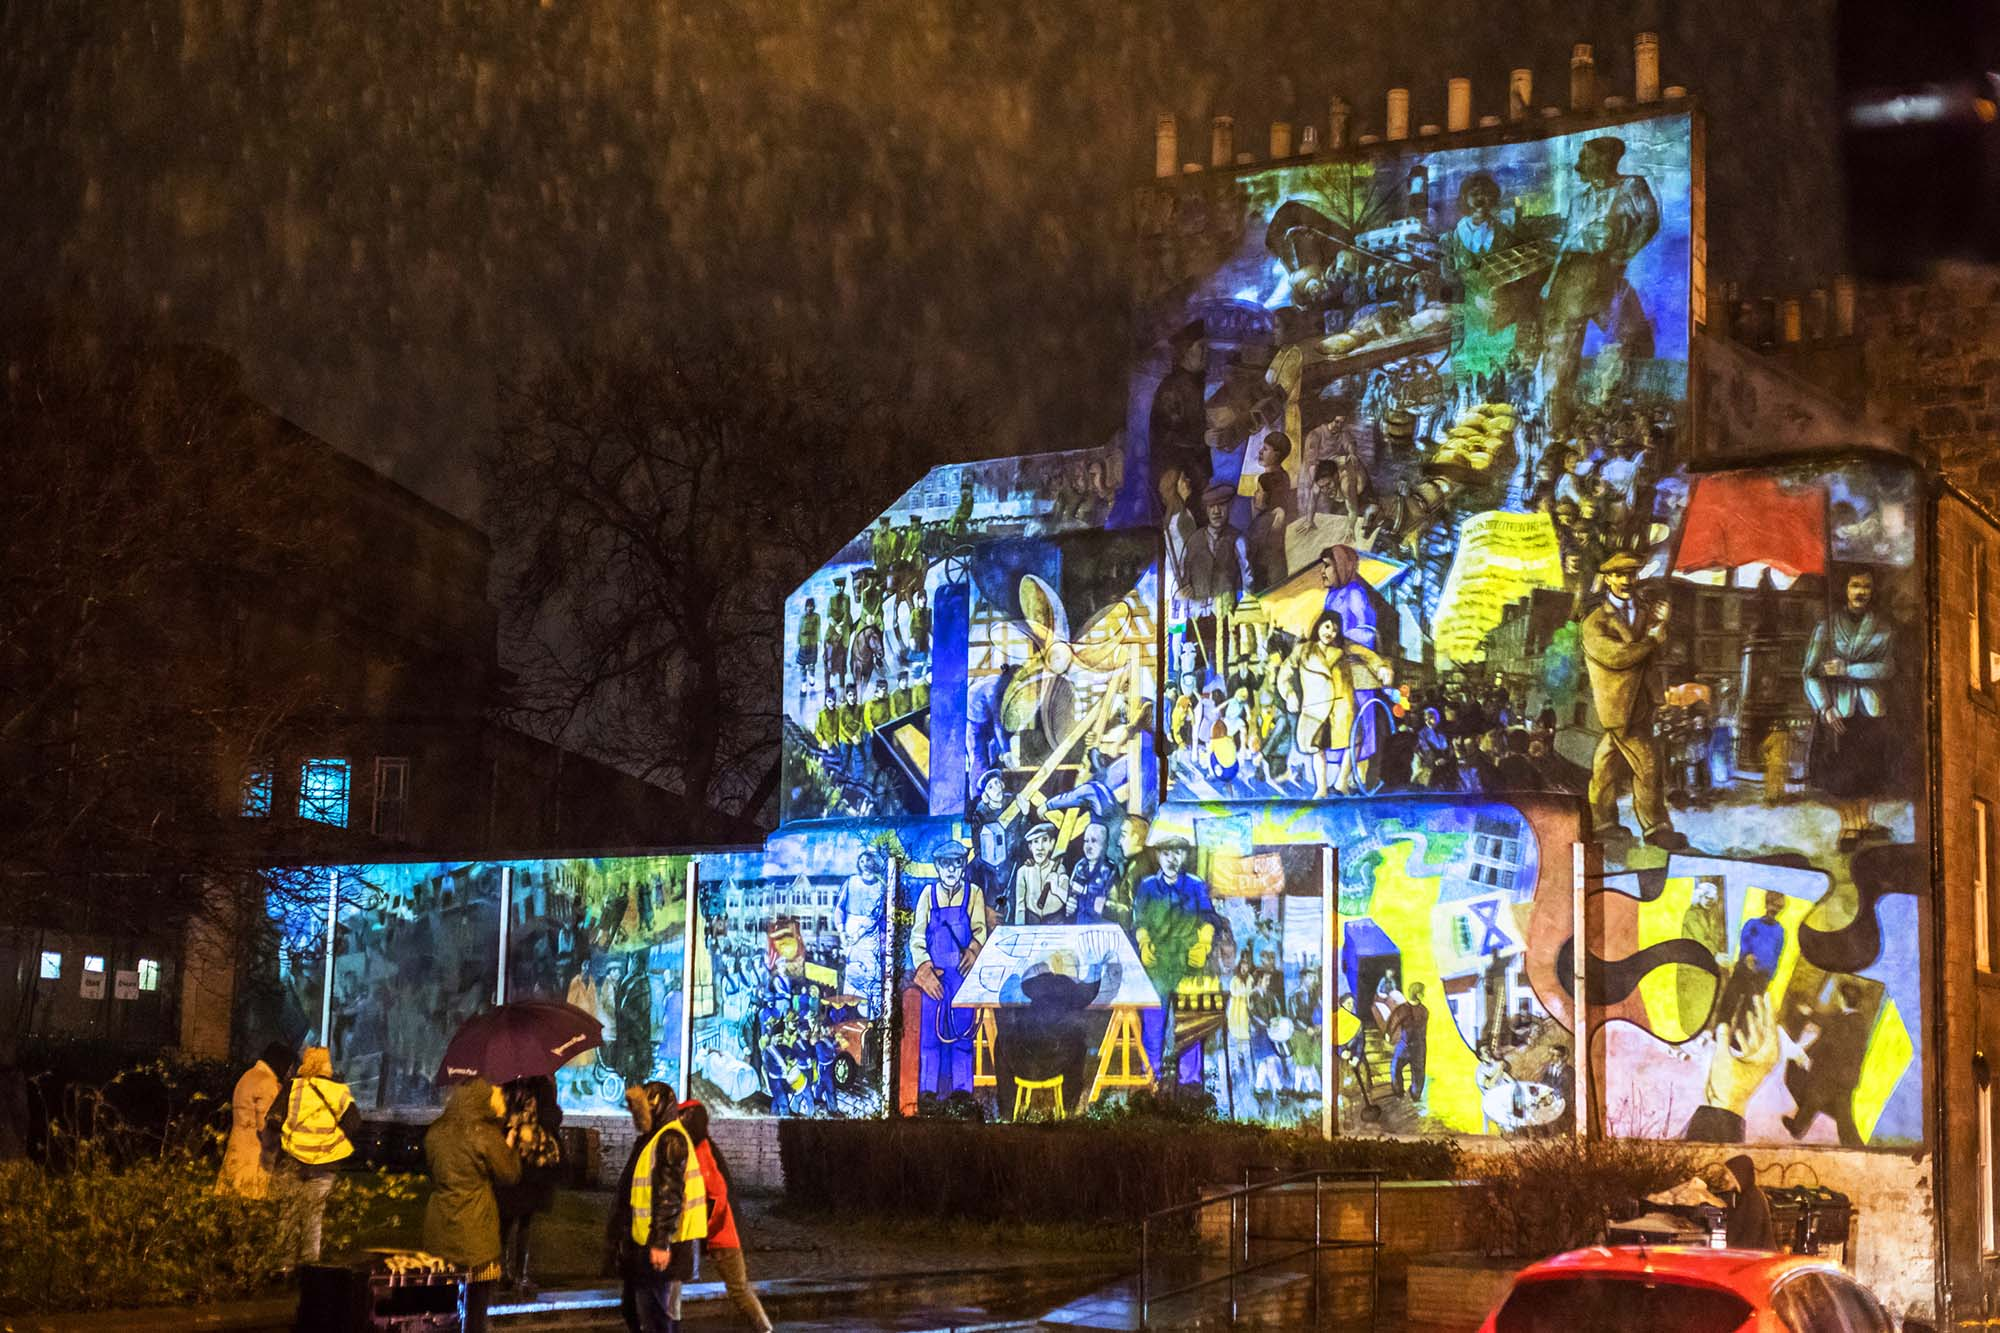 leith mural projection in full